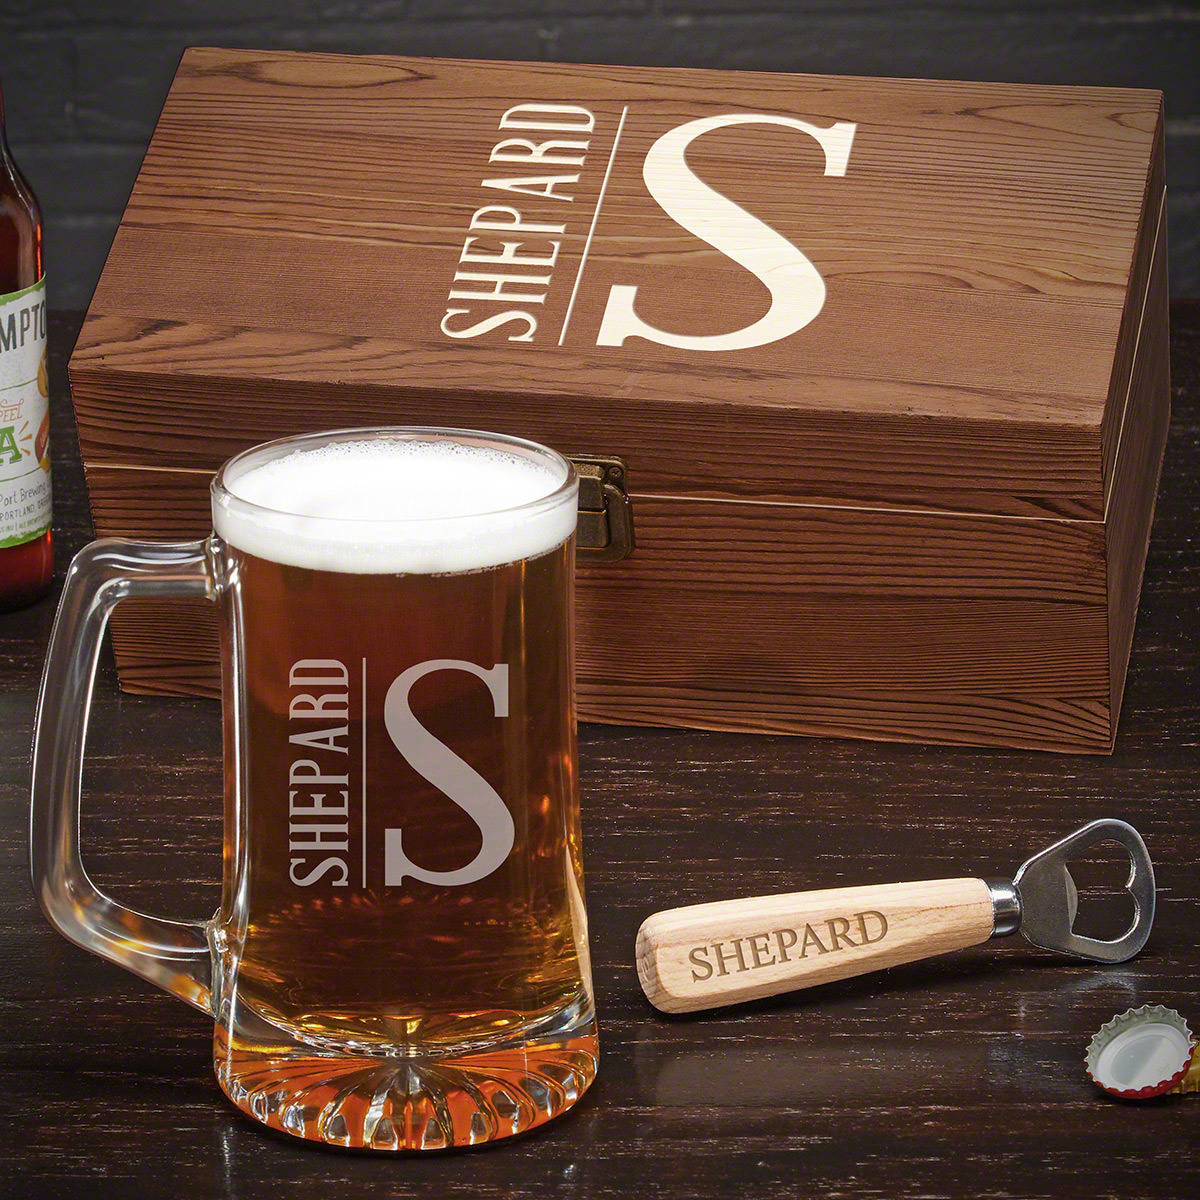 Every beer lover deserves something special for one of their favorite pastimes. Our personalized beer mug gift set gives any guy all they need to enjoy their favorite brew. The beer mug will give them the bar experience in their own home. The included bot #mug